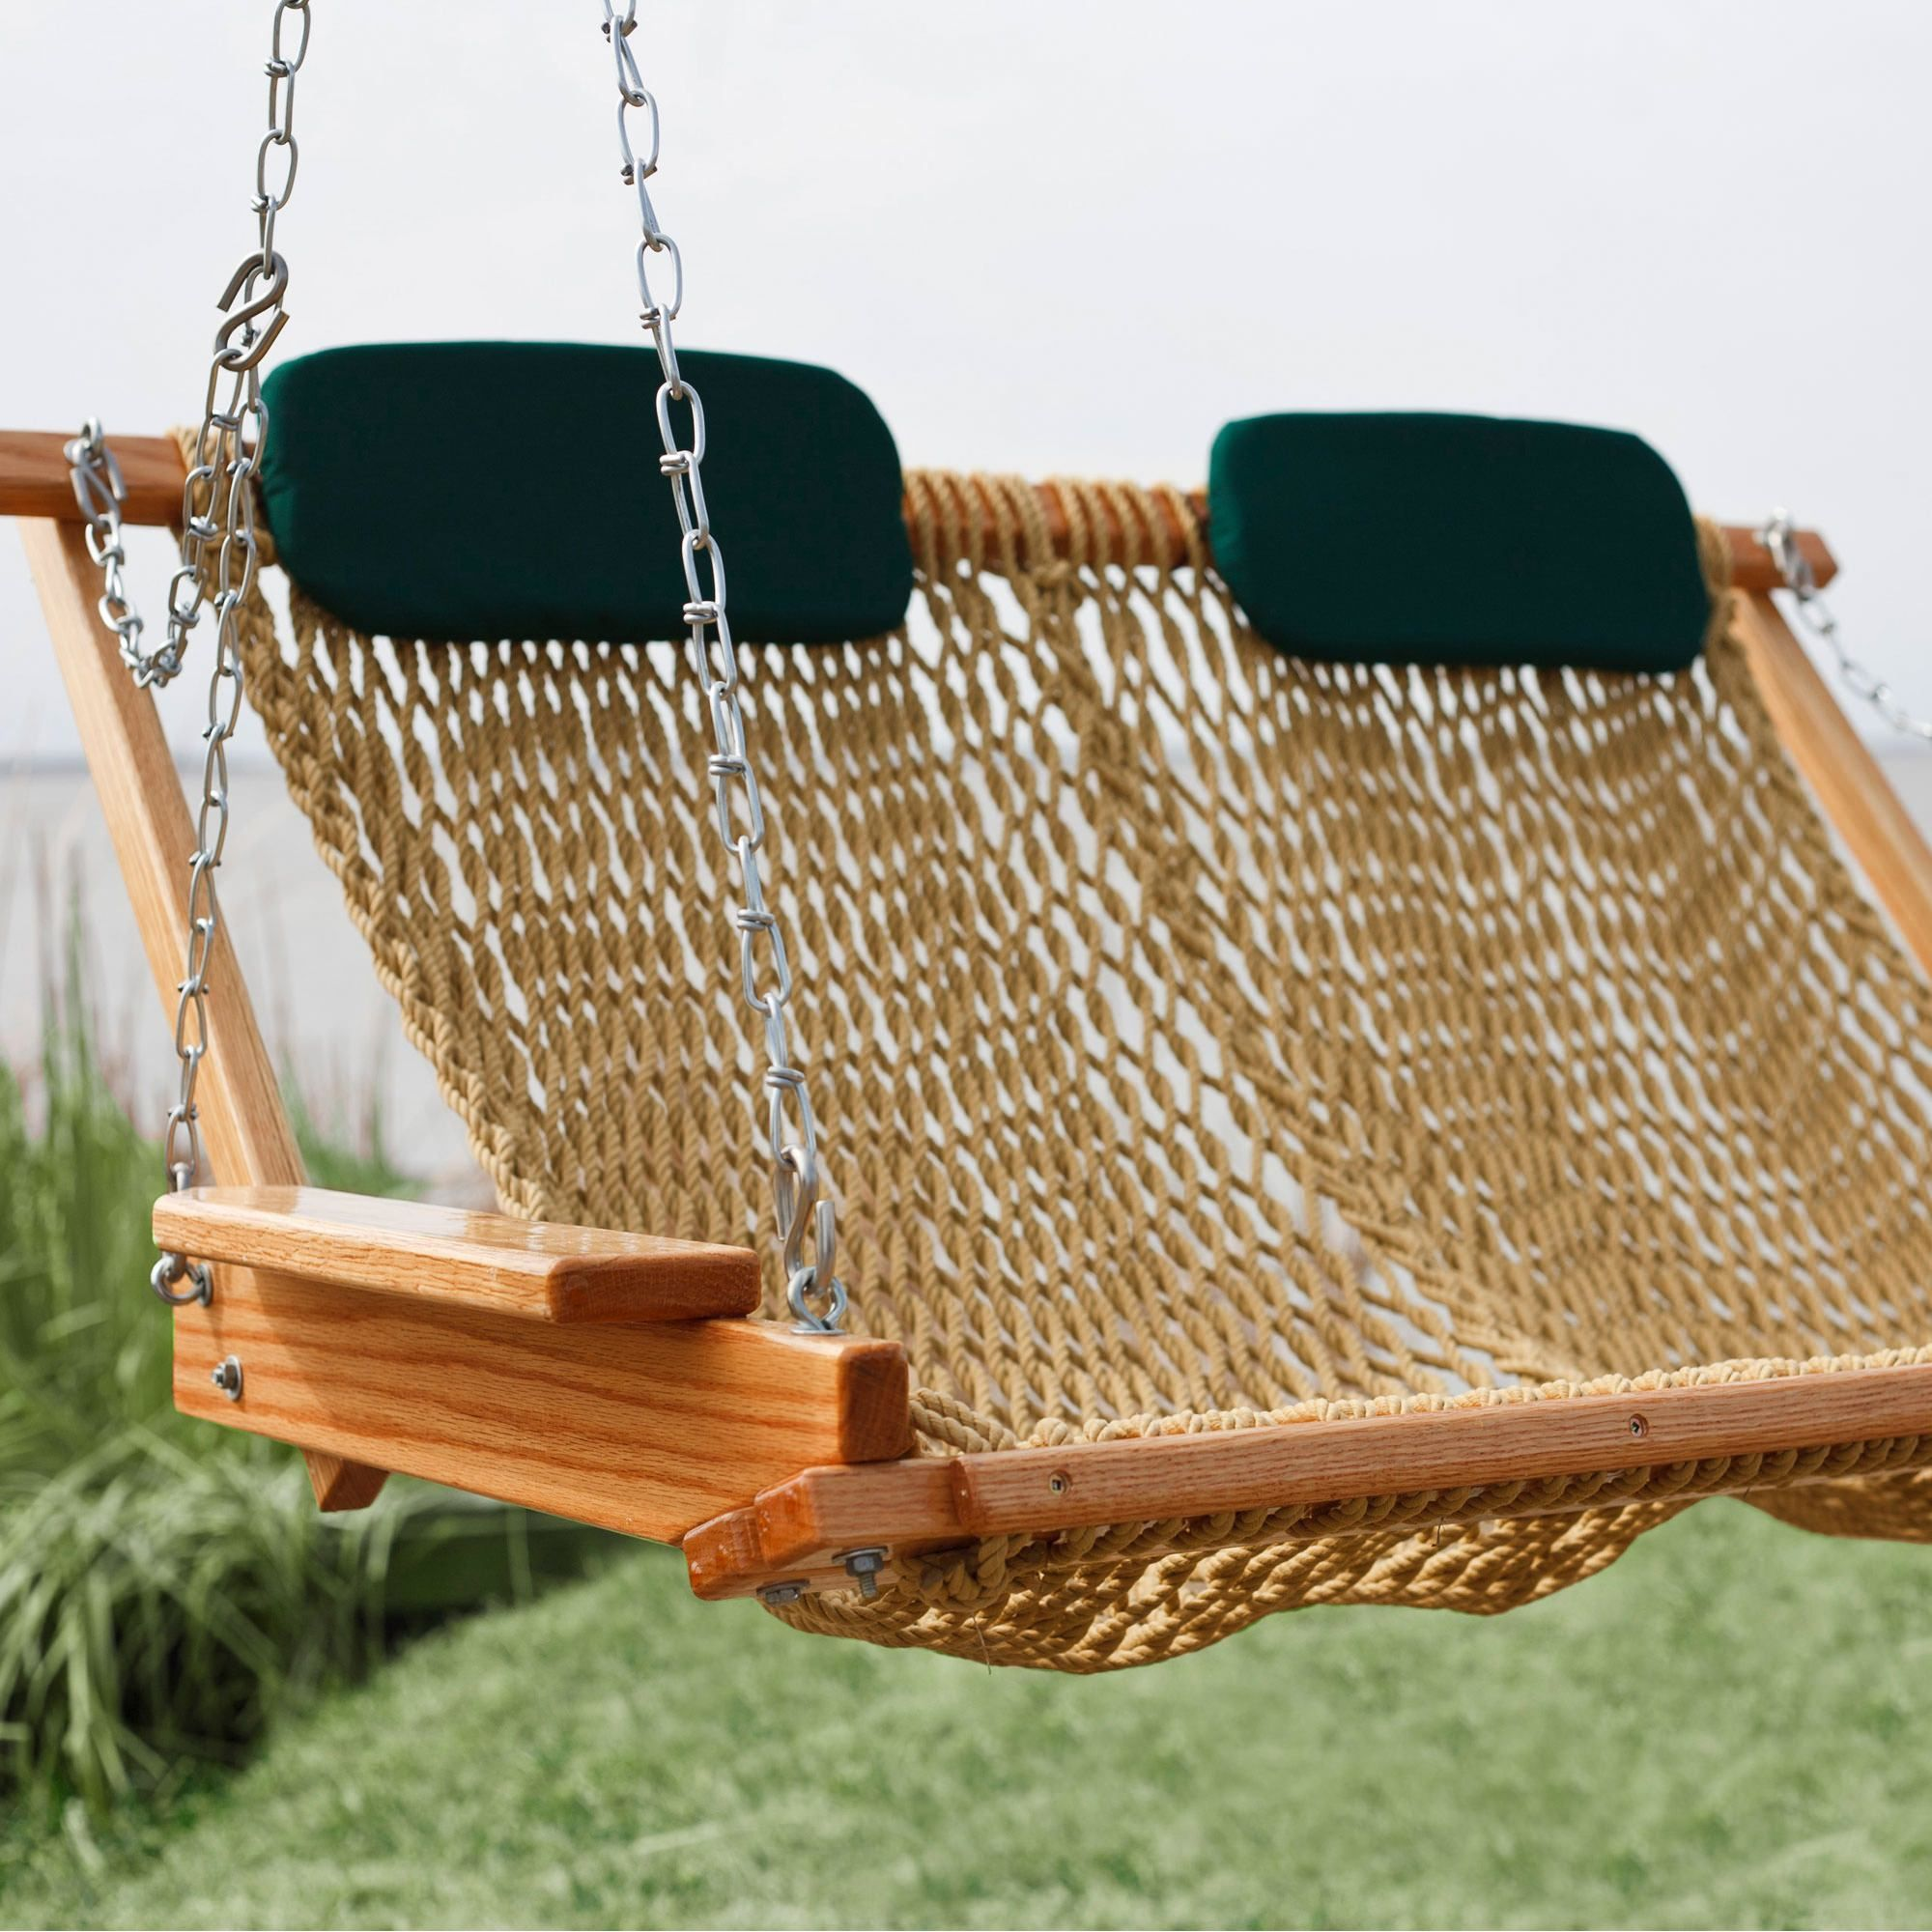 Engaging Hammock Chairs for Simple Outdoor Hammock Furniture